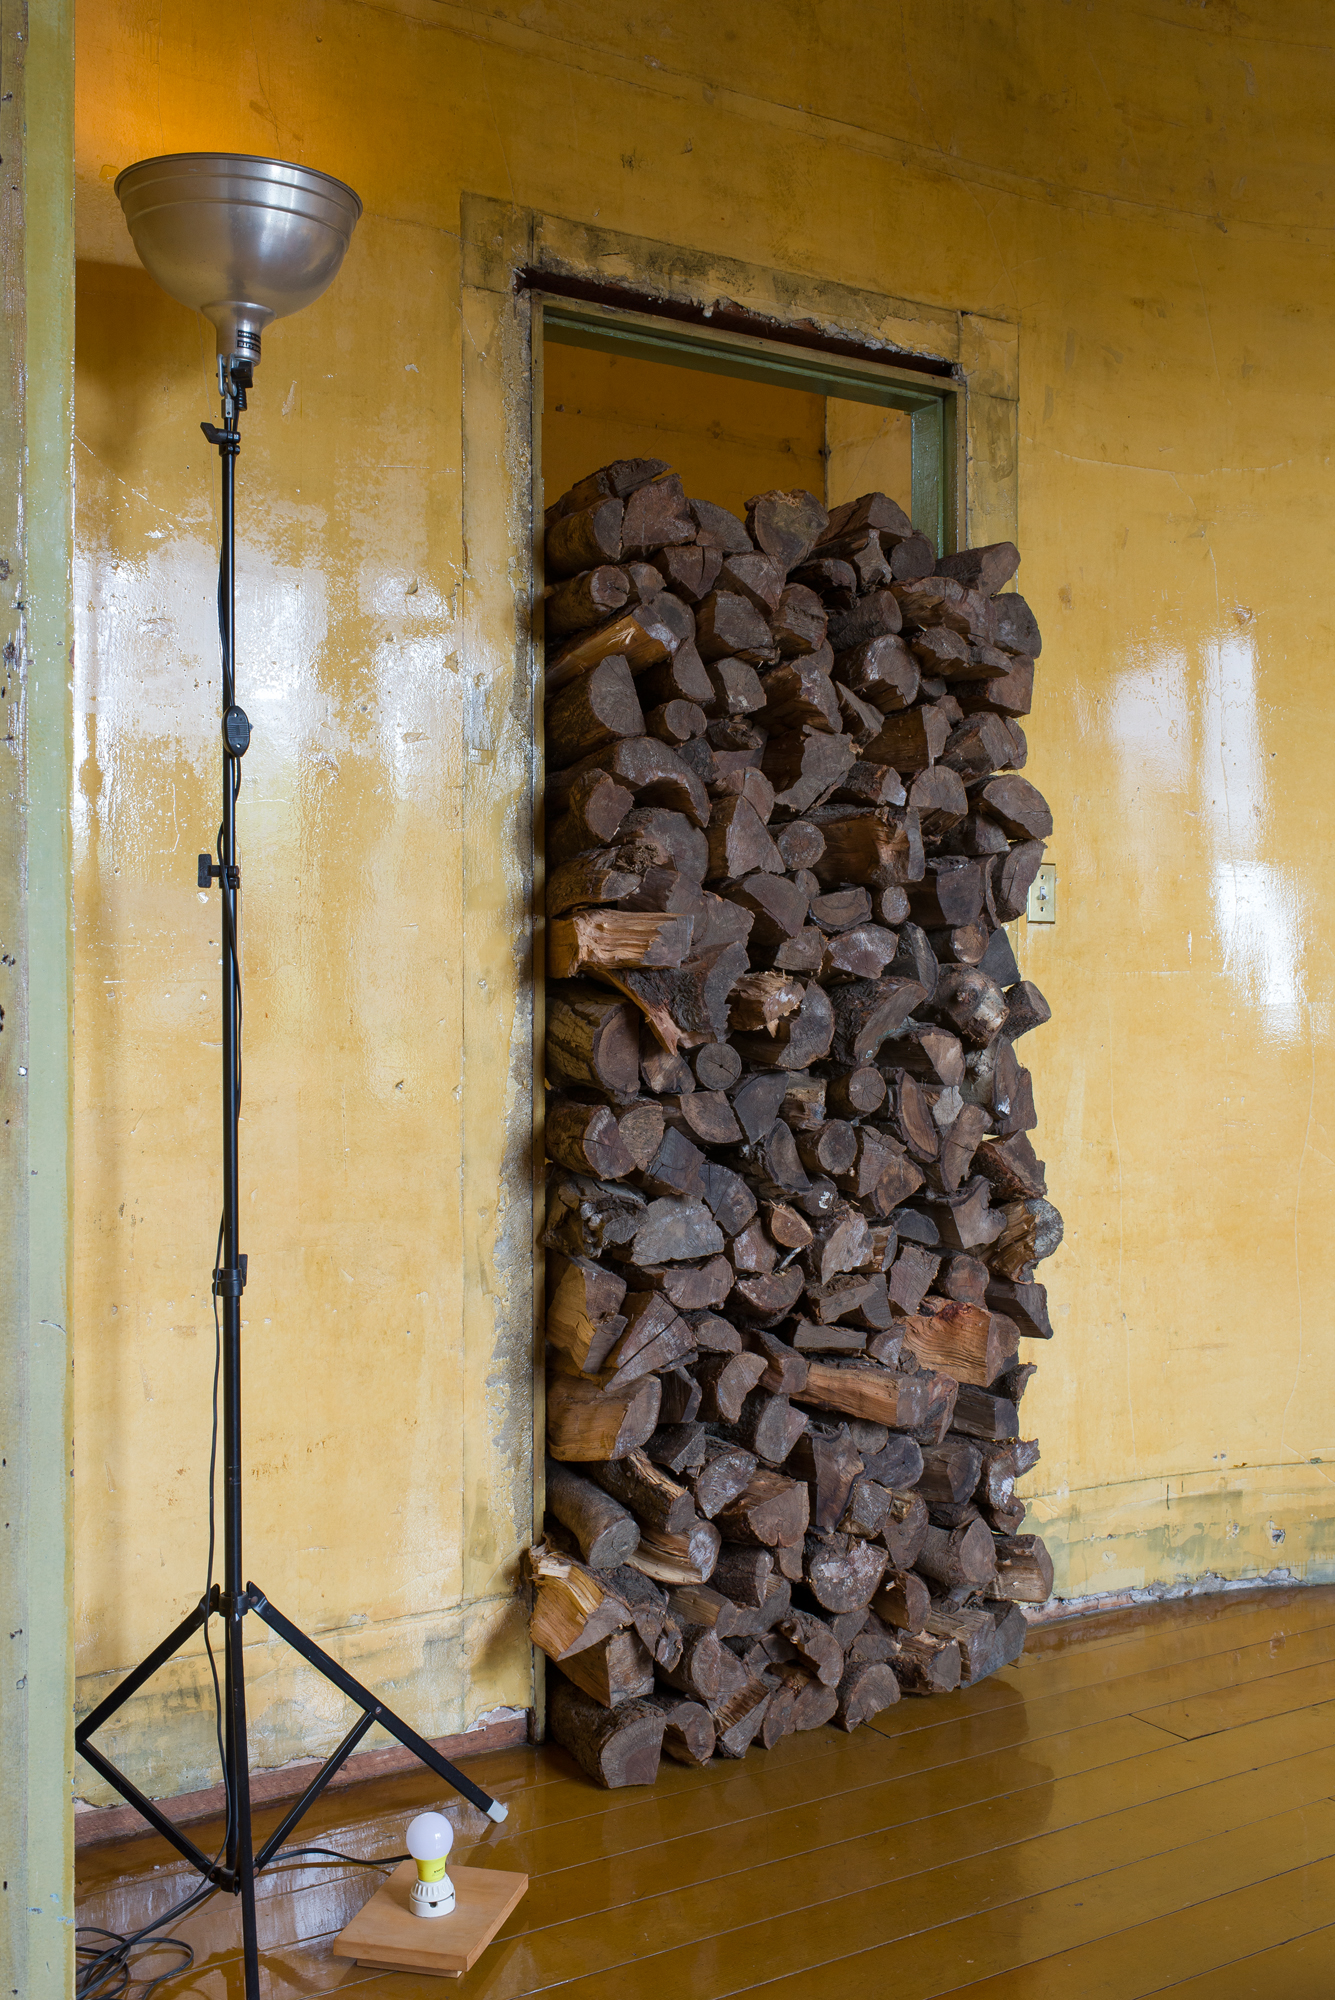 David Ireland,  500 Capp Street (interior view with logs in doorway) , 1987. Wood, 80 x 33 x 15 inches. Remade for the exhibition Amulet or He calls it chaos, 2019; Photo: Preston/Kalogiros; Courtesy of The 500 Capp Street Foundation.